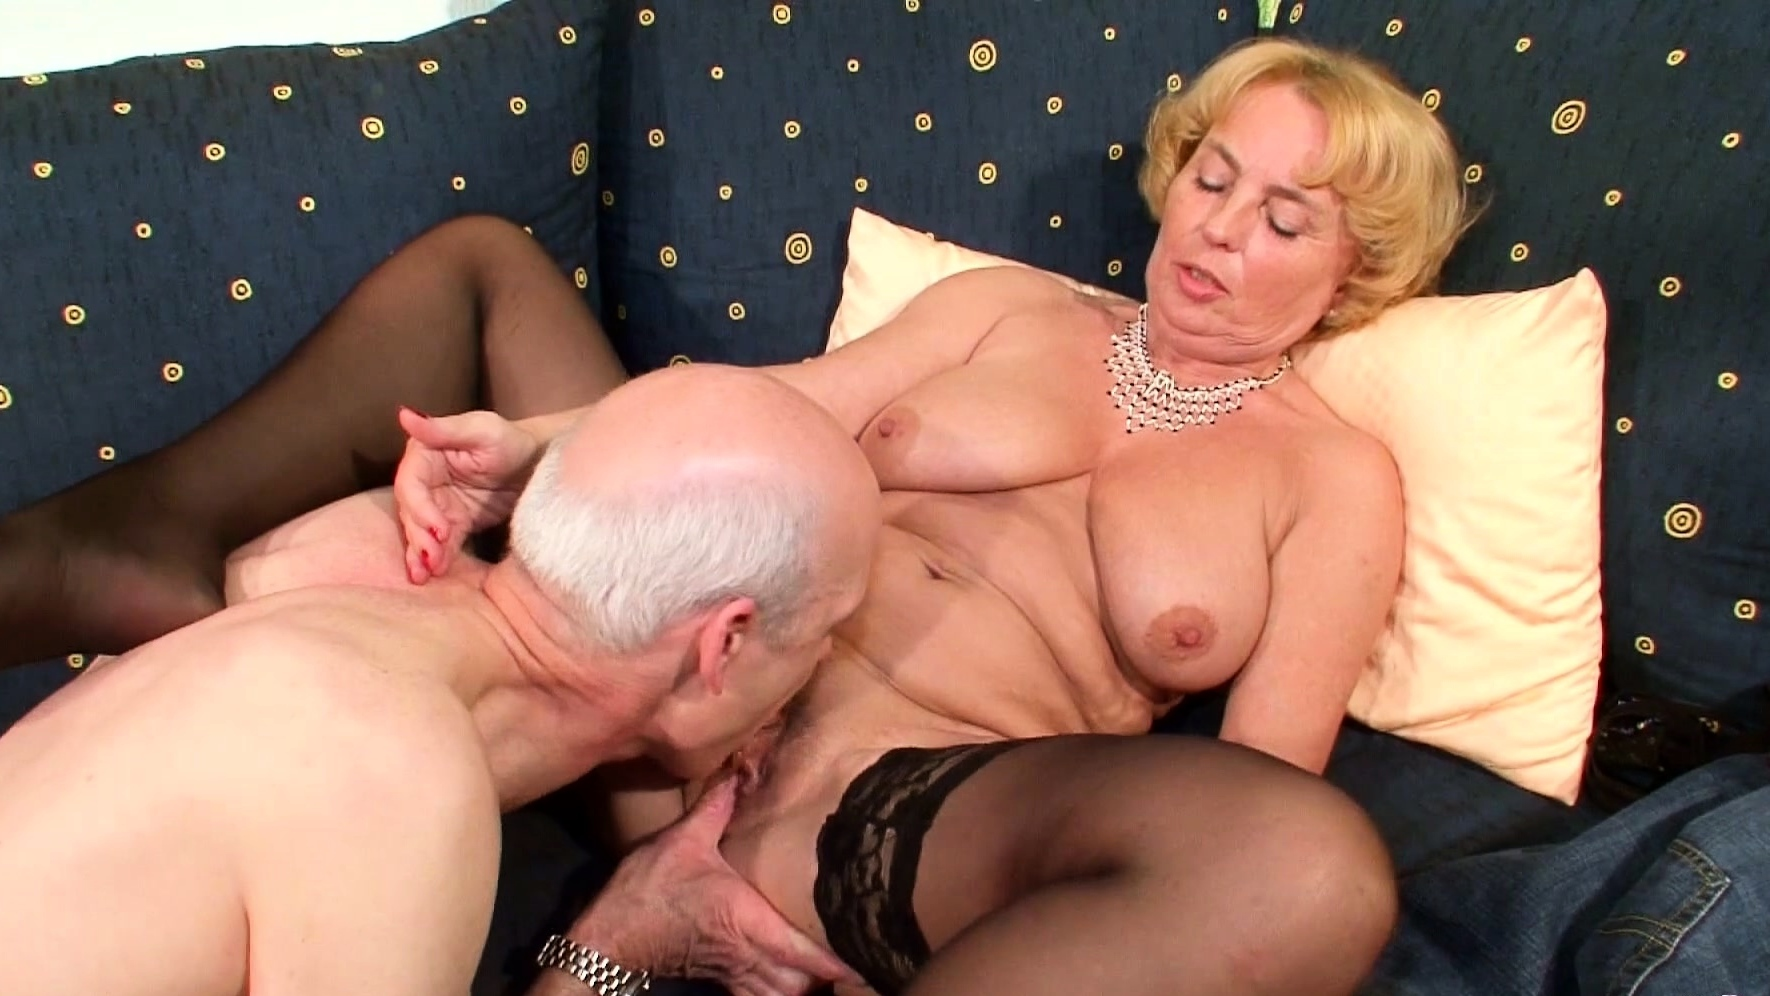 74yr Old German Granny And Grandpa First Time Porn